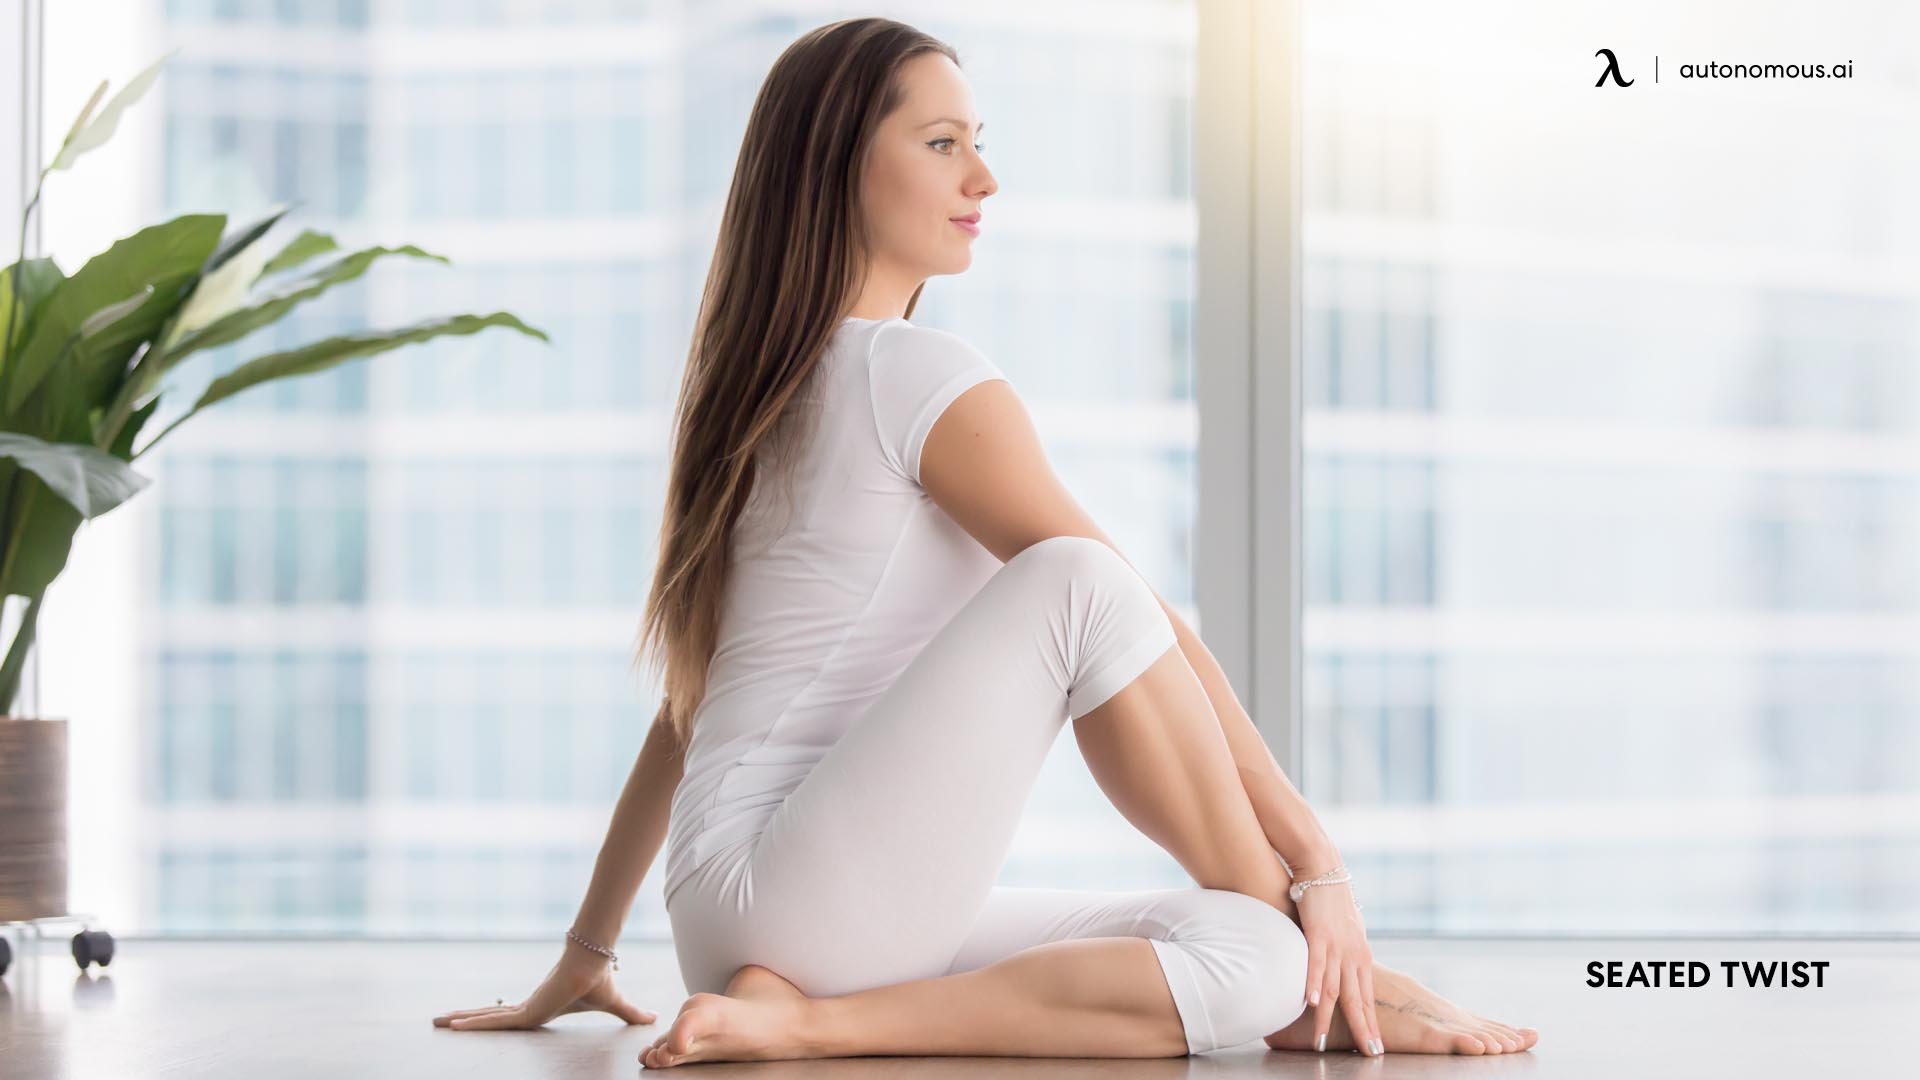 Seated Twist position